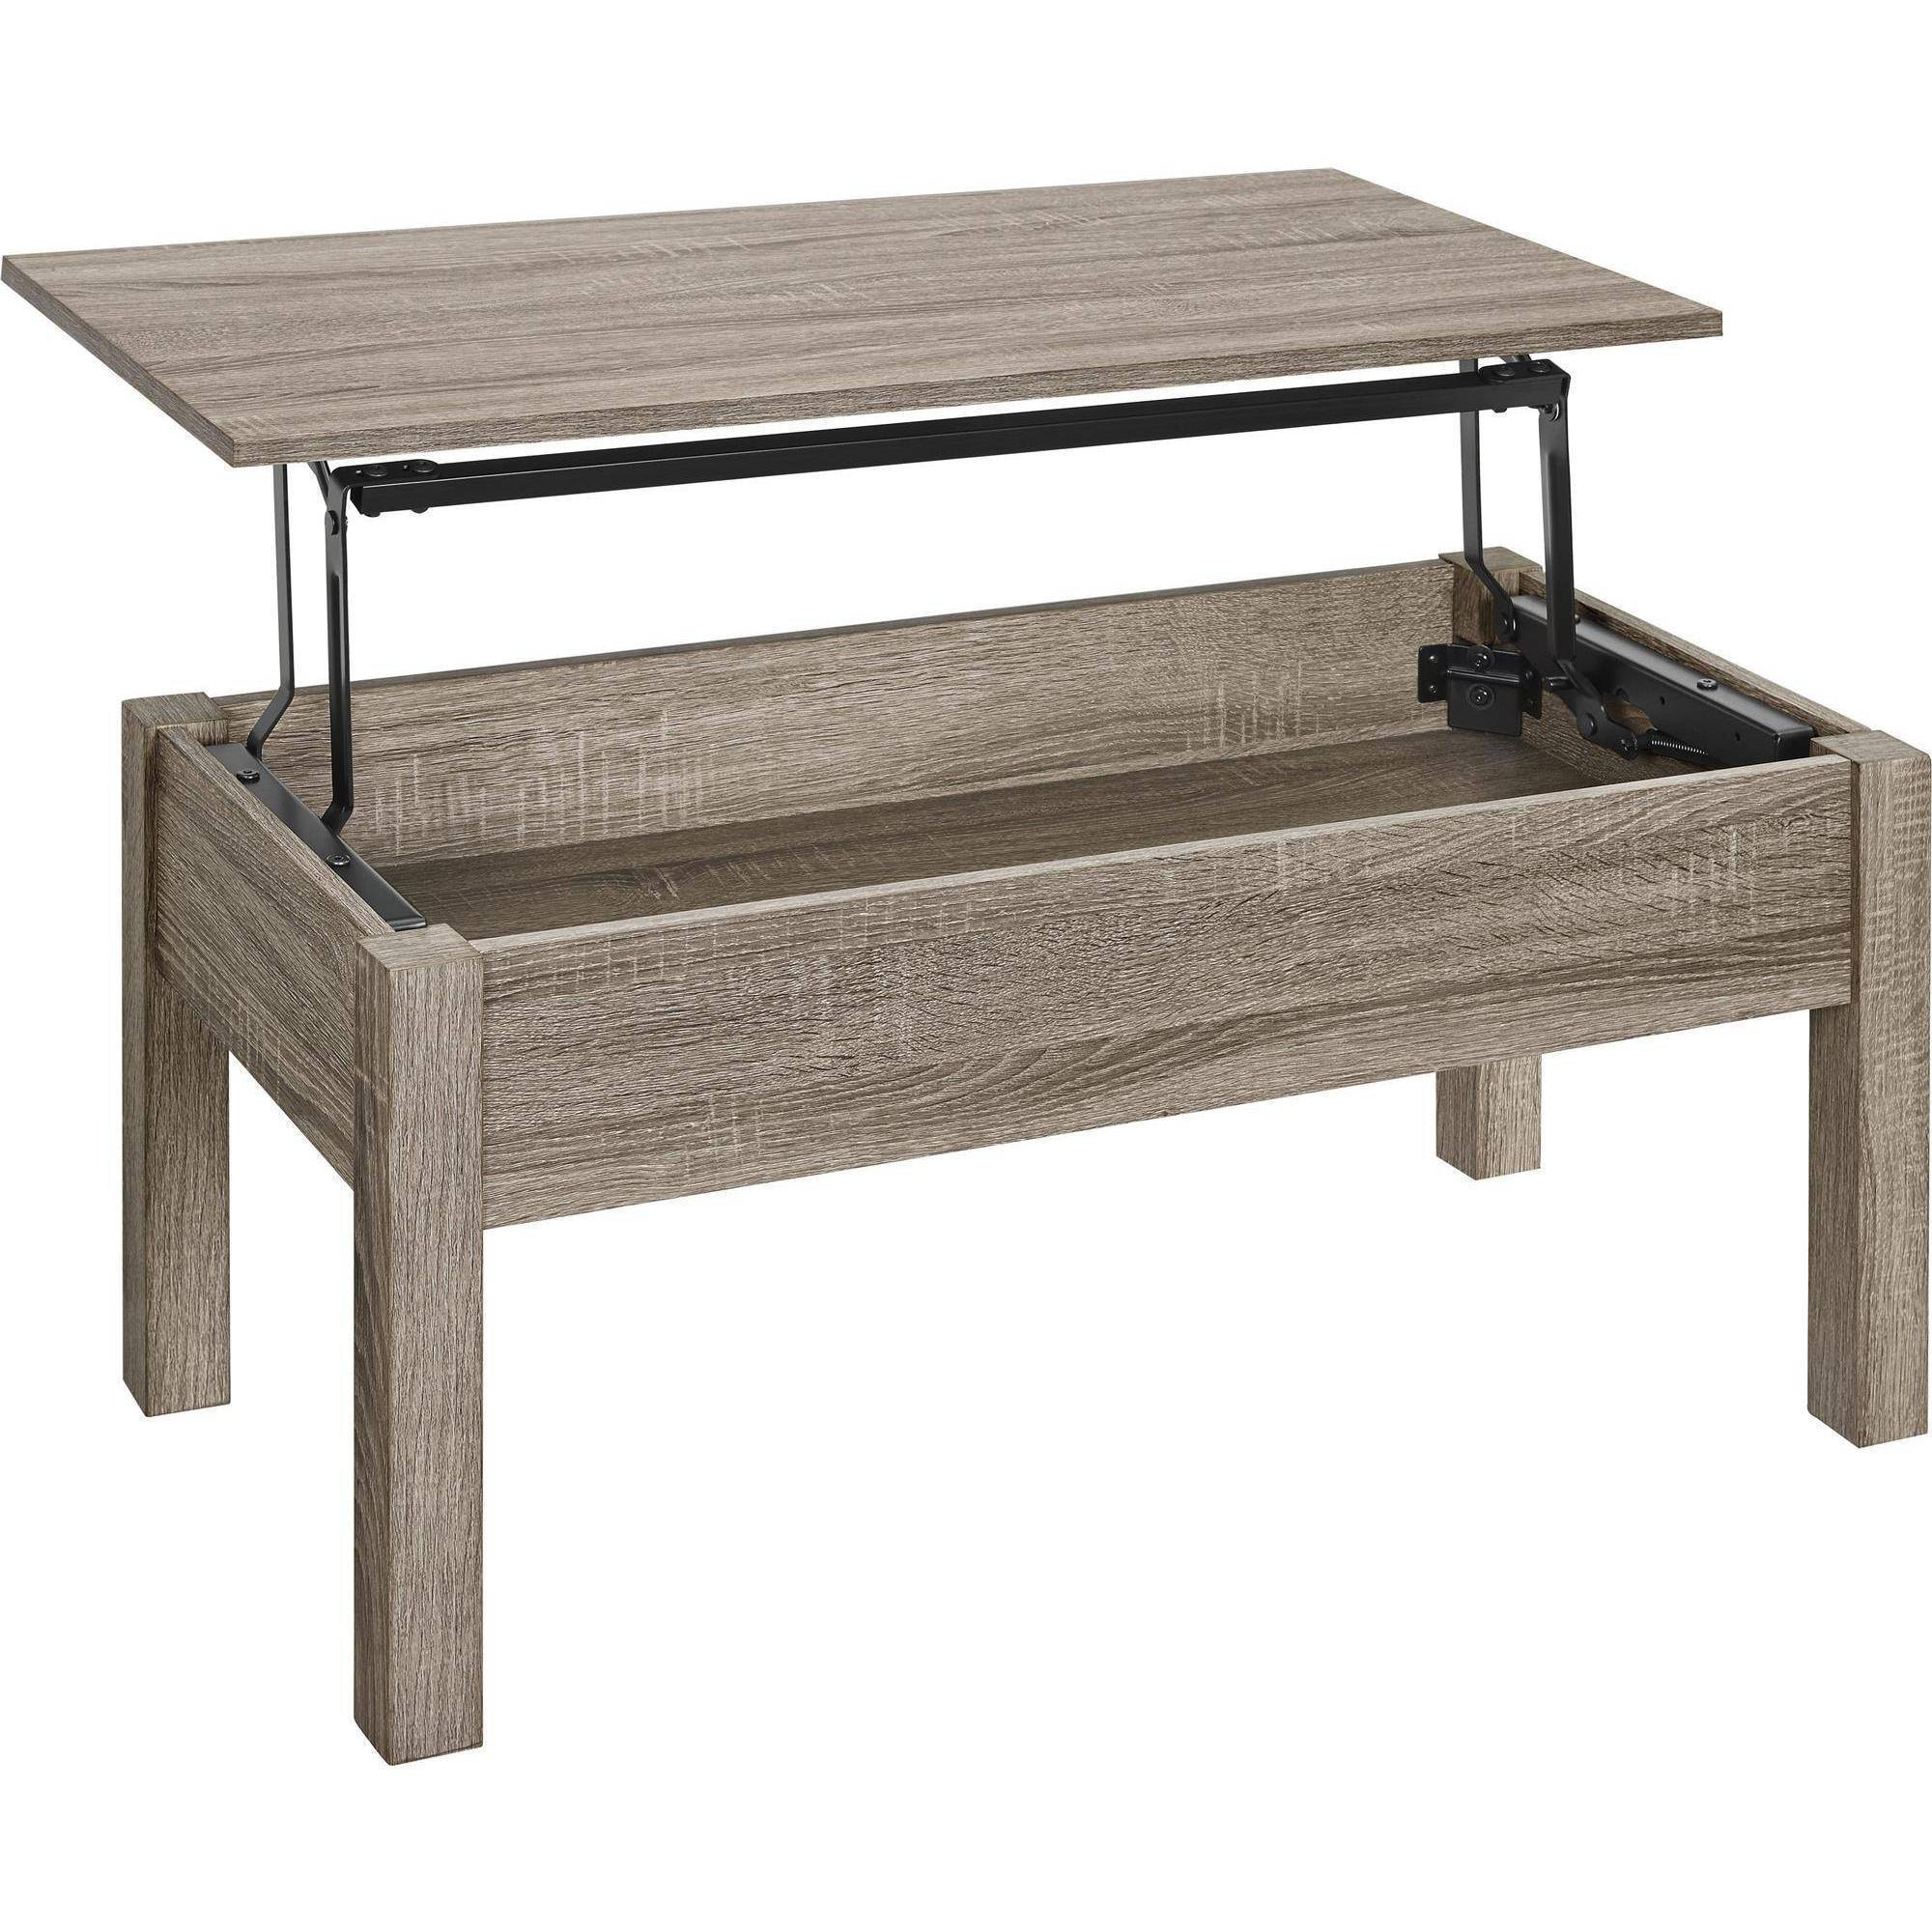 Mainstays Lift-Top Coffee Table, Multiple Colors - Walmart in Pull Up Coffee Tables (Image 23 of 30)